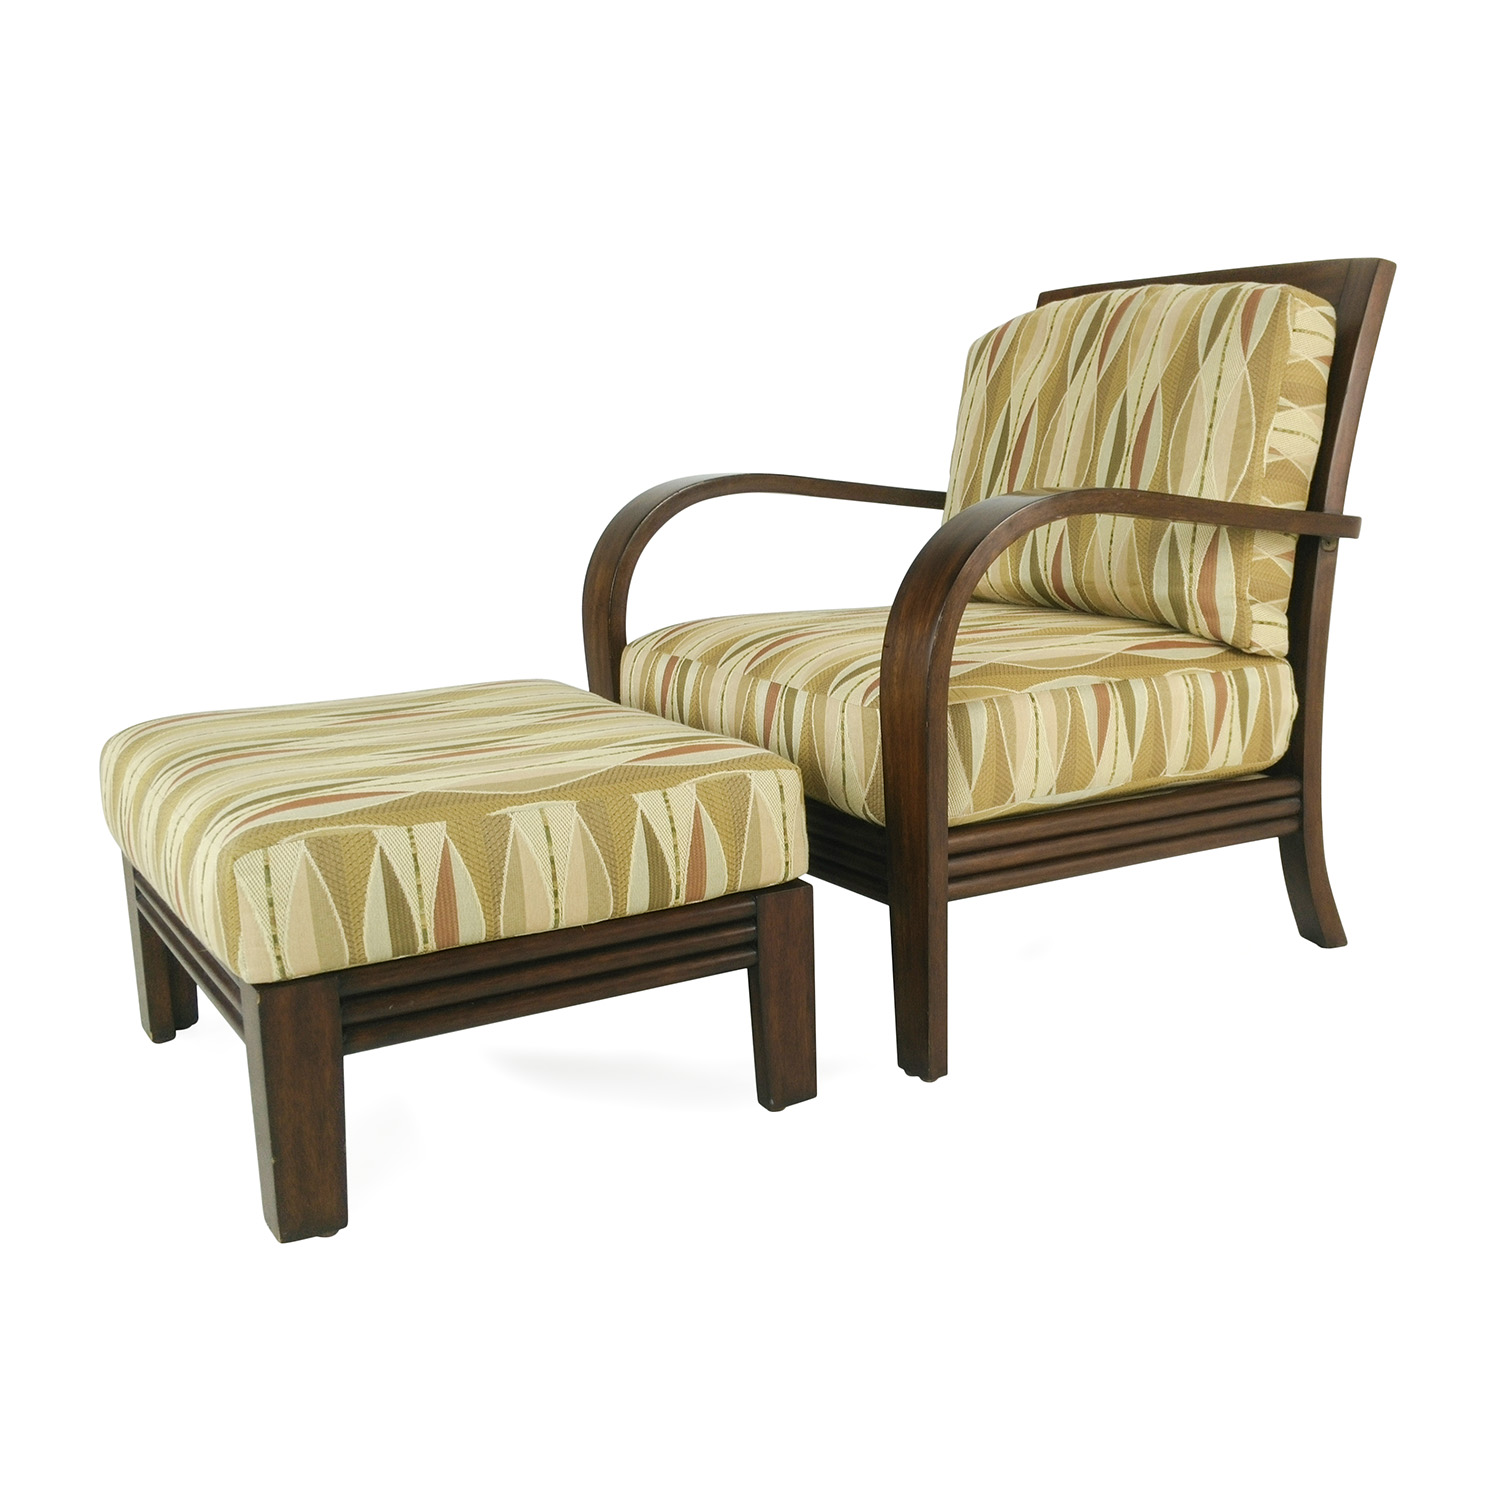 81 Off Ethan Allen Ethan Allen Lounge Chair And Ottoman